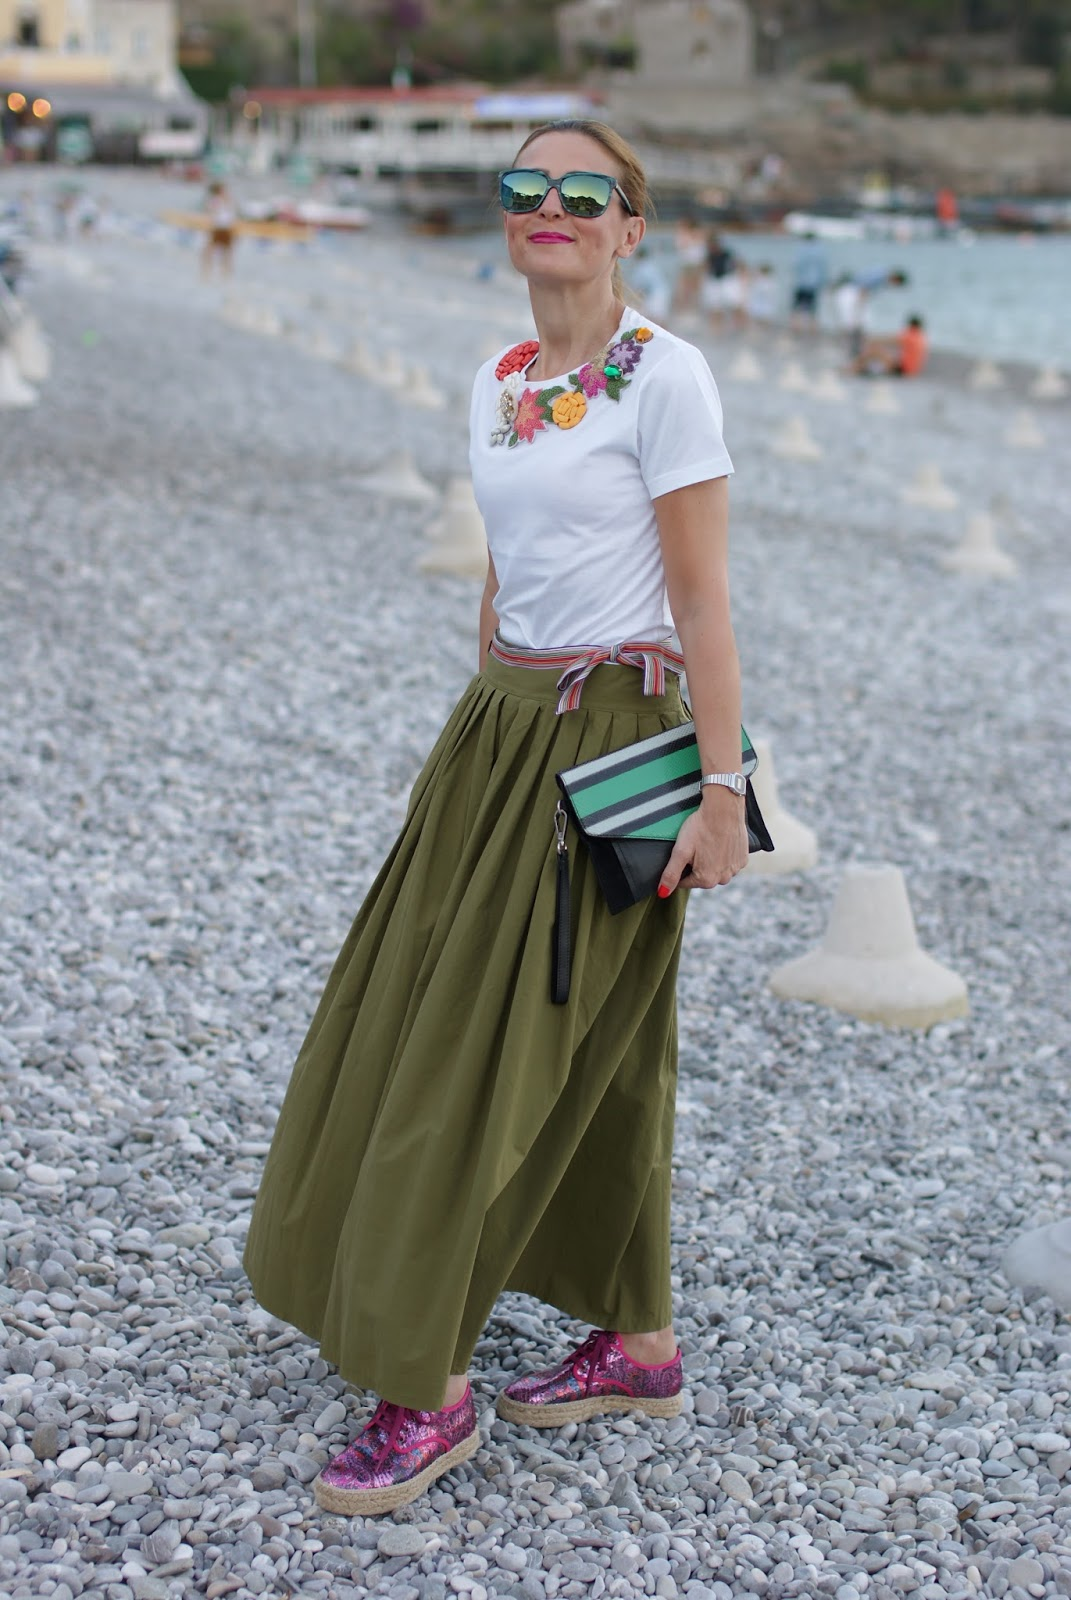 Espadrillas Eco friendly shoes and maxi skirt on Fashion and Cookies fashion blog, fashion blogger style